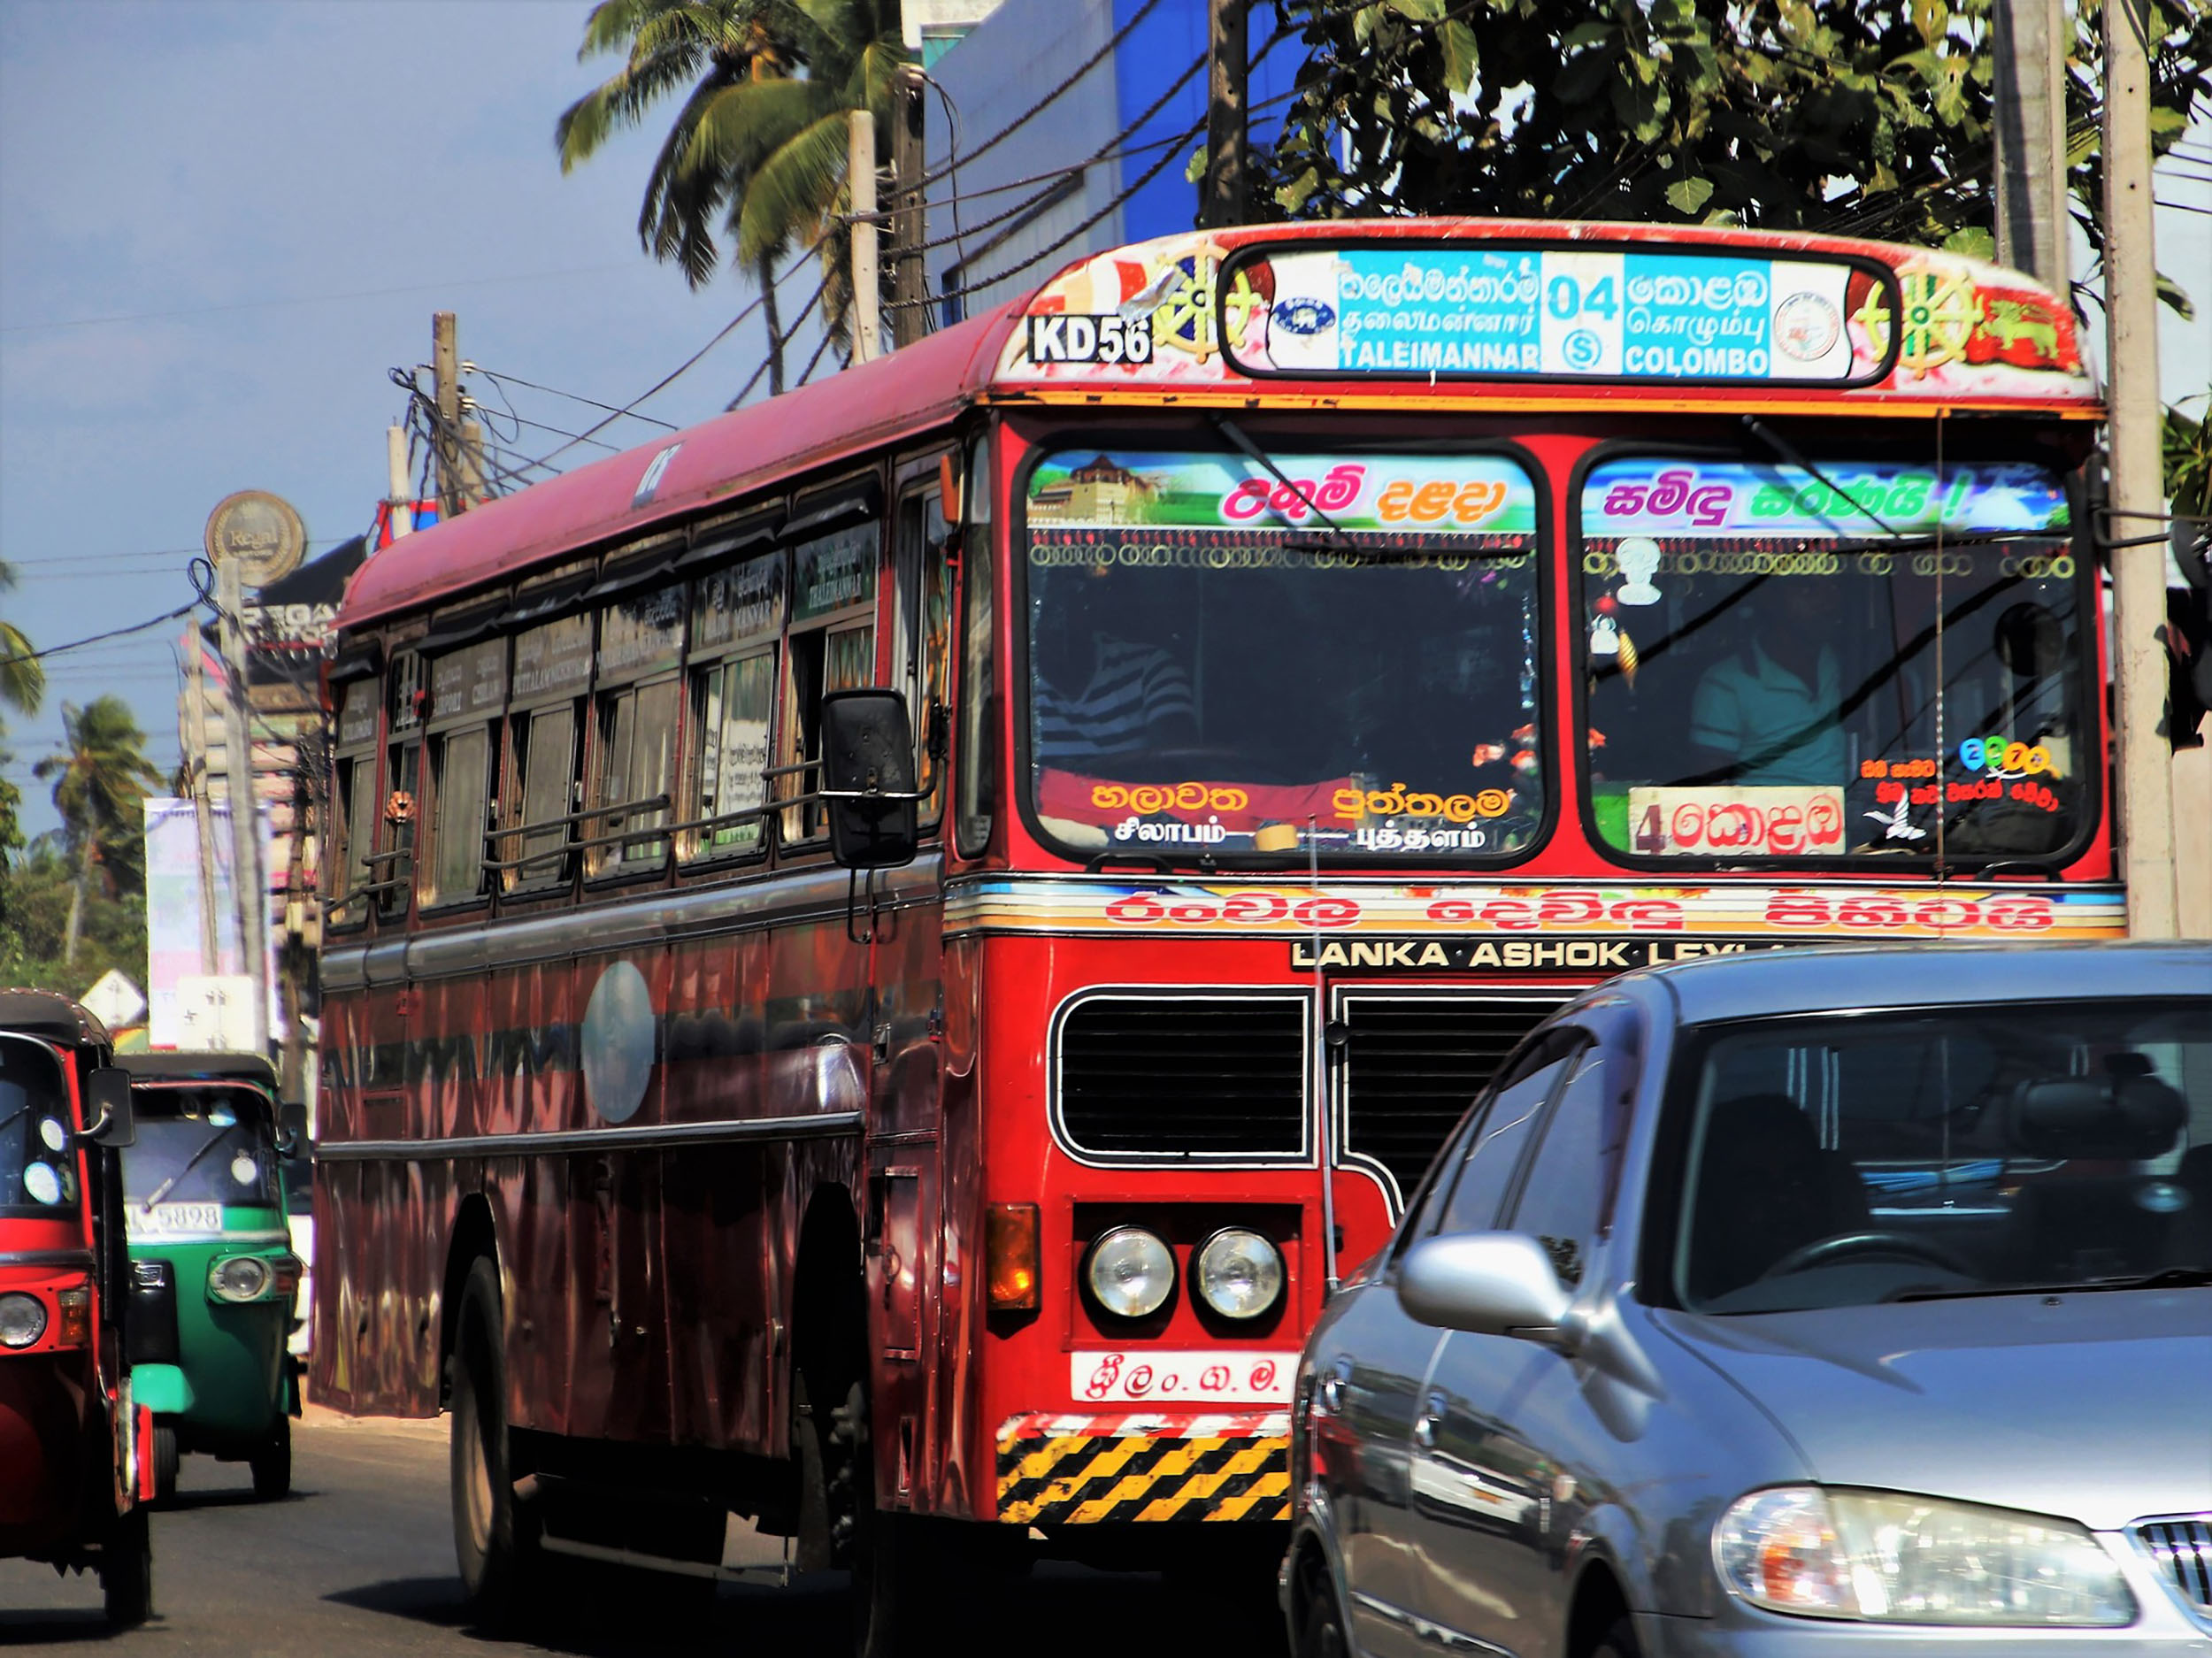 Colourful local Sri Lankan buses